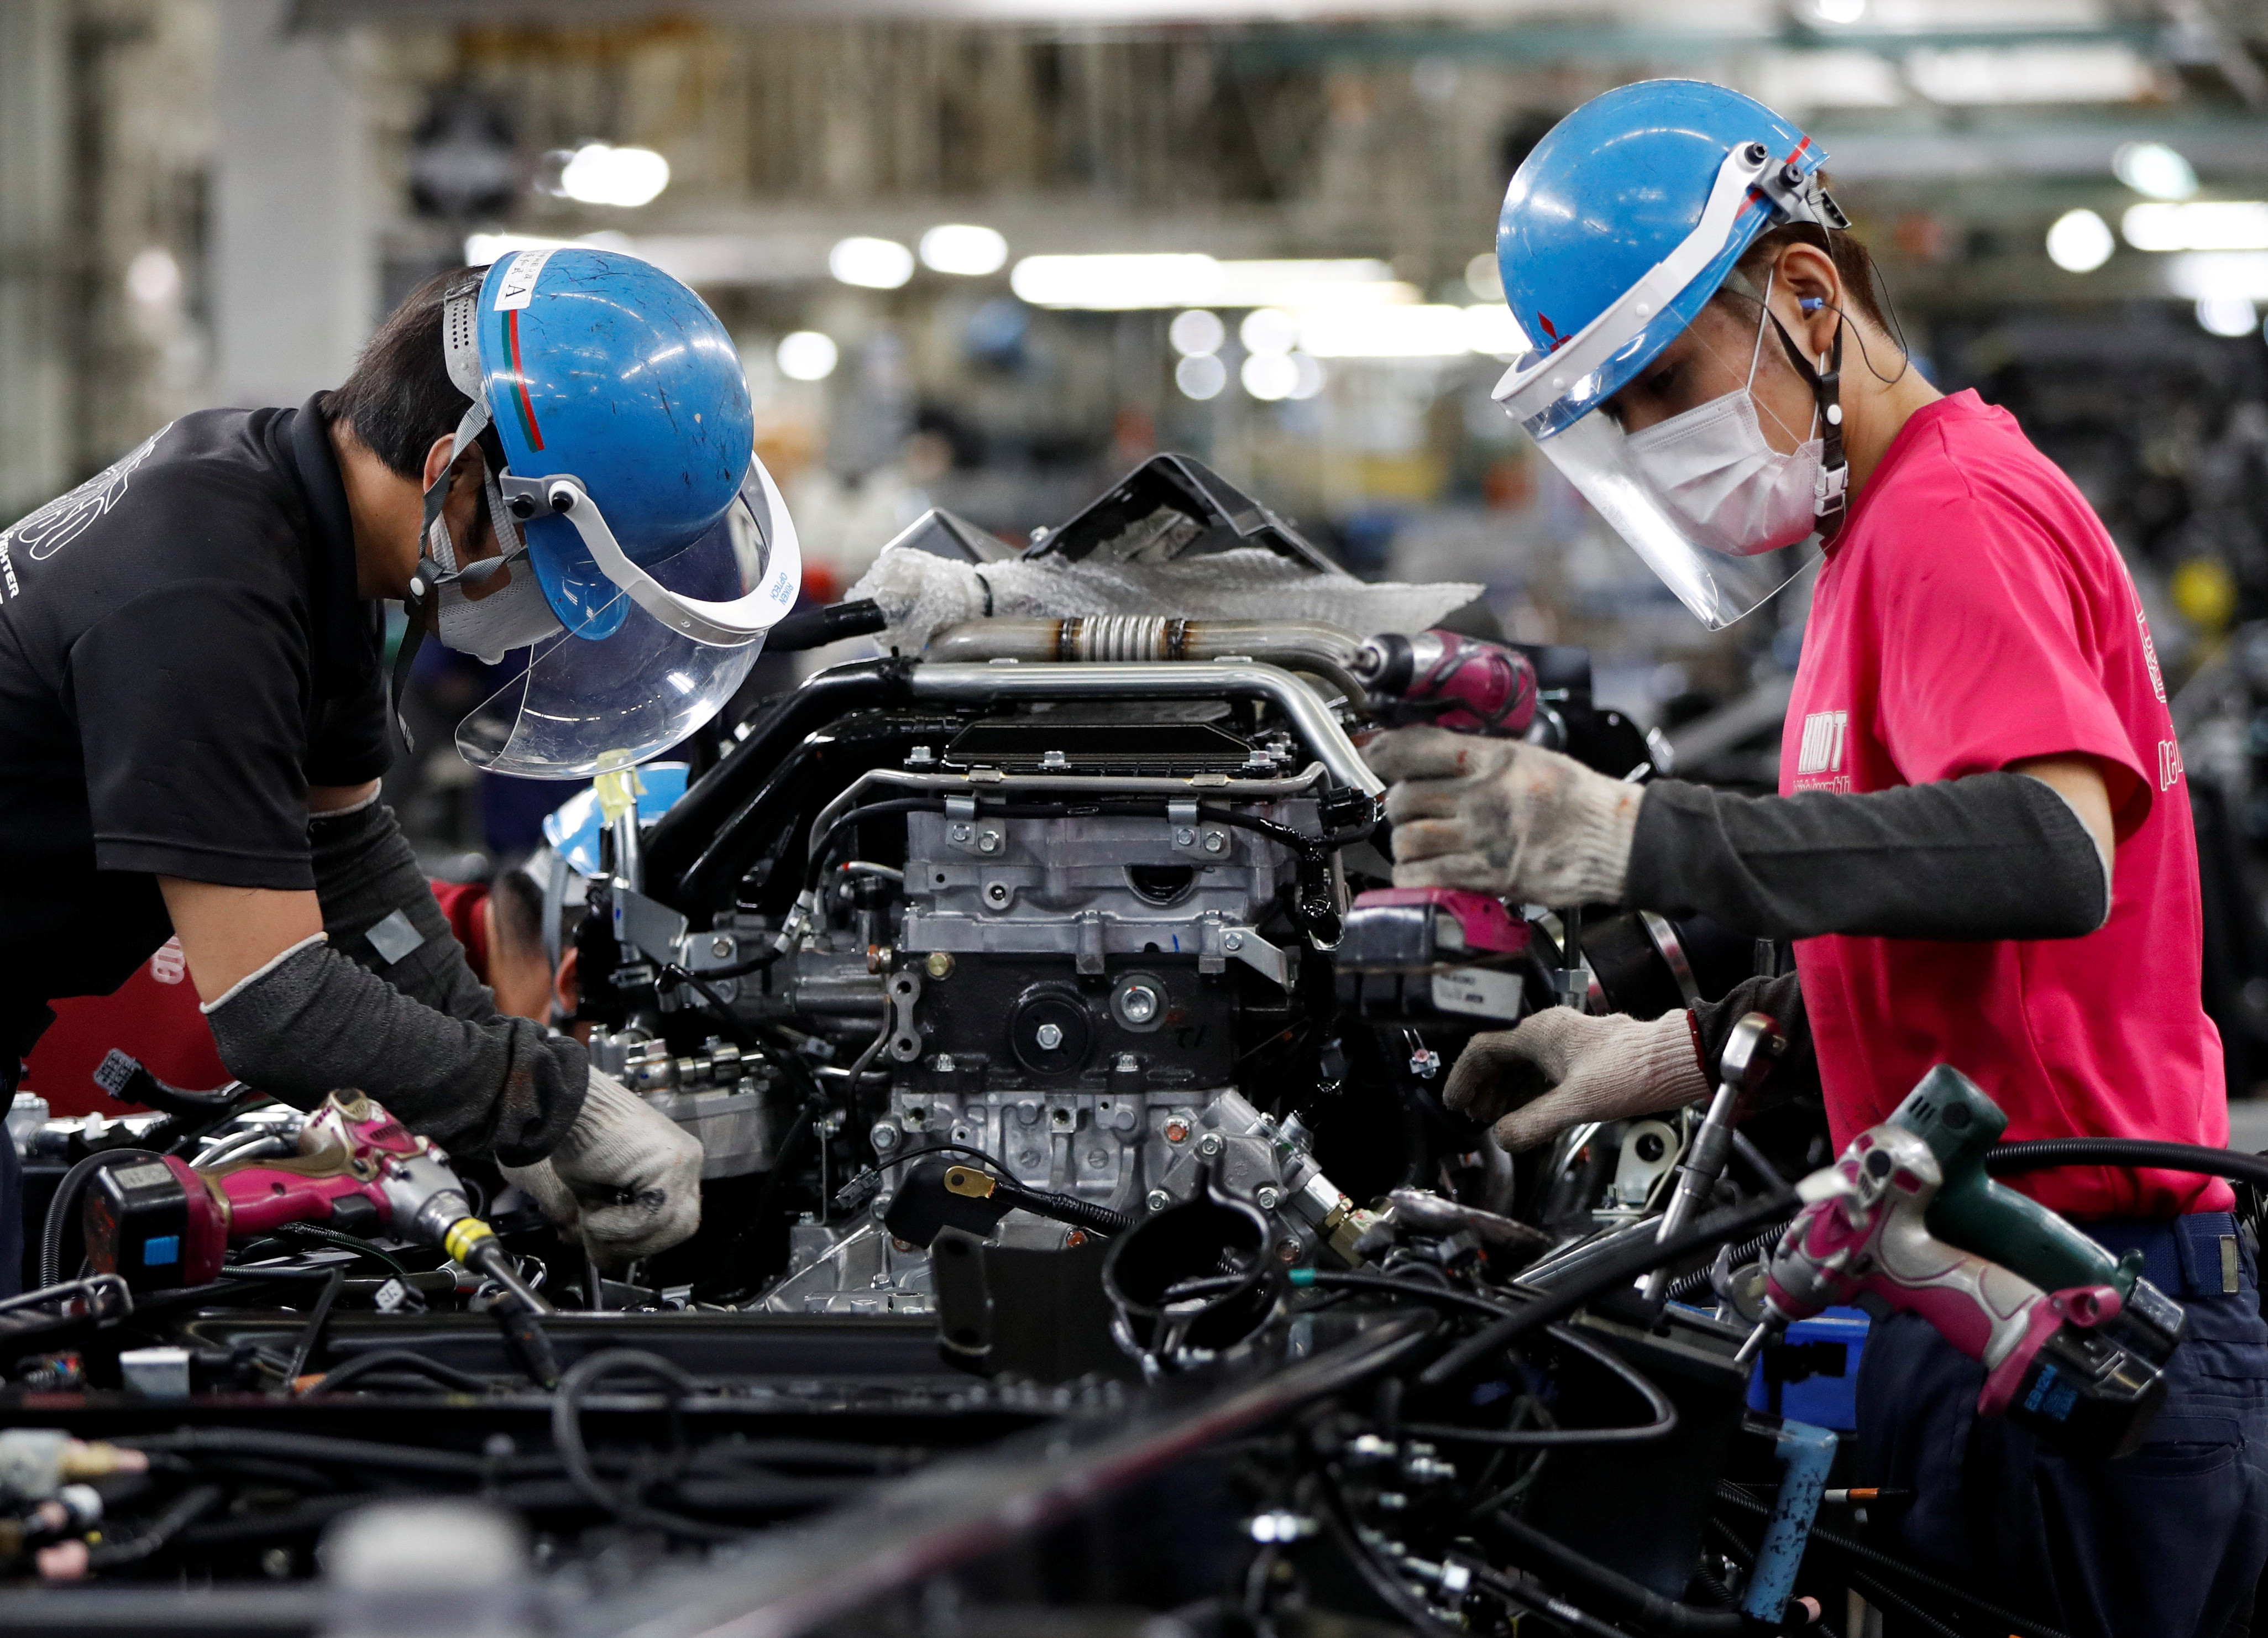 Employees wearing protective face masks and face guards work on the automobile assembly line as the maker ramps up car production with new security and health measures as a step to resume full operations, during the outbreak of the coronavirus disease (COVID-19), at Kawasaki factory of Mitsubishi Fuso Truck and Bus Corp., owned by Germany-based Daimler AG, in Kawasaki, south of Tokyo, Japan May 18, 2020